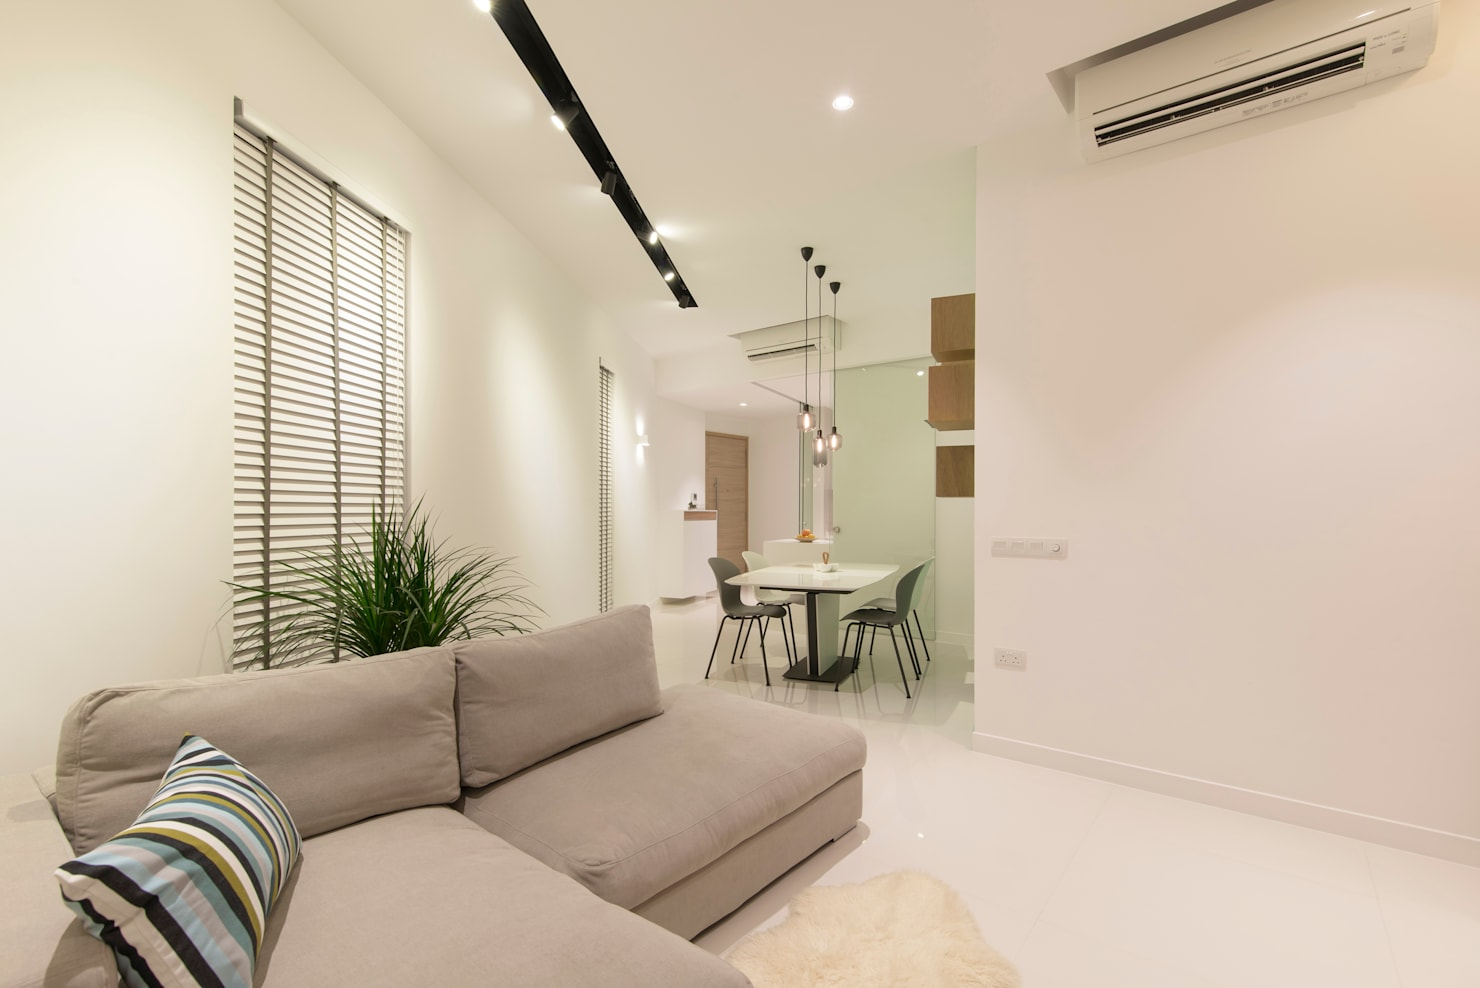 12 simple steps to a perfect minimalist home